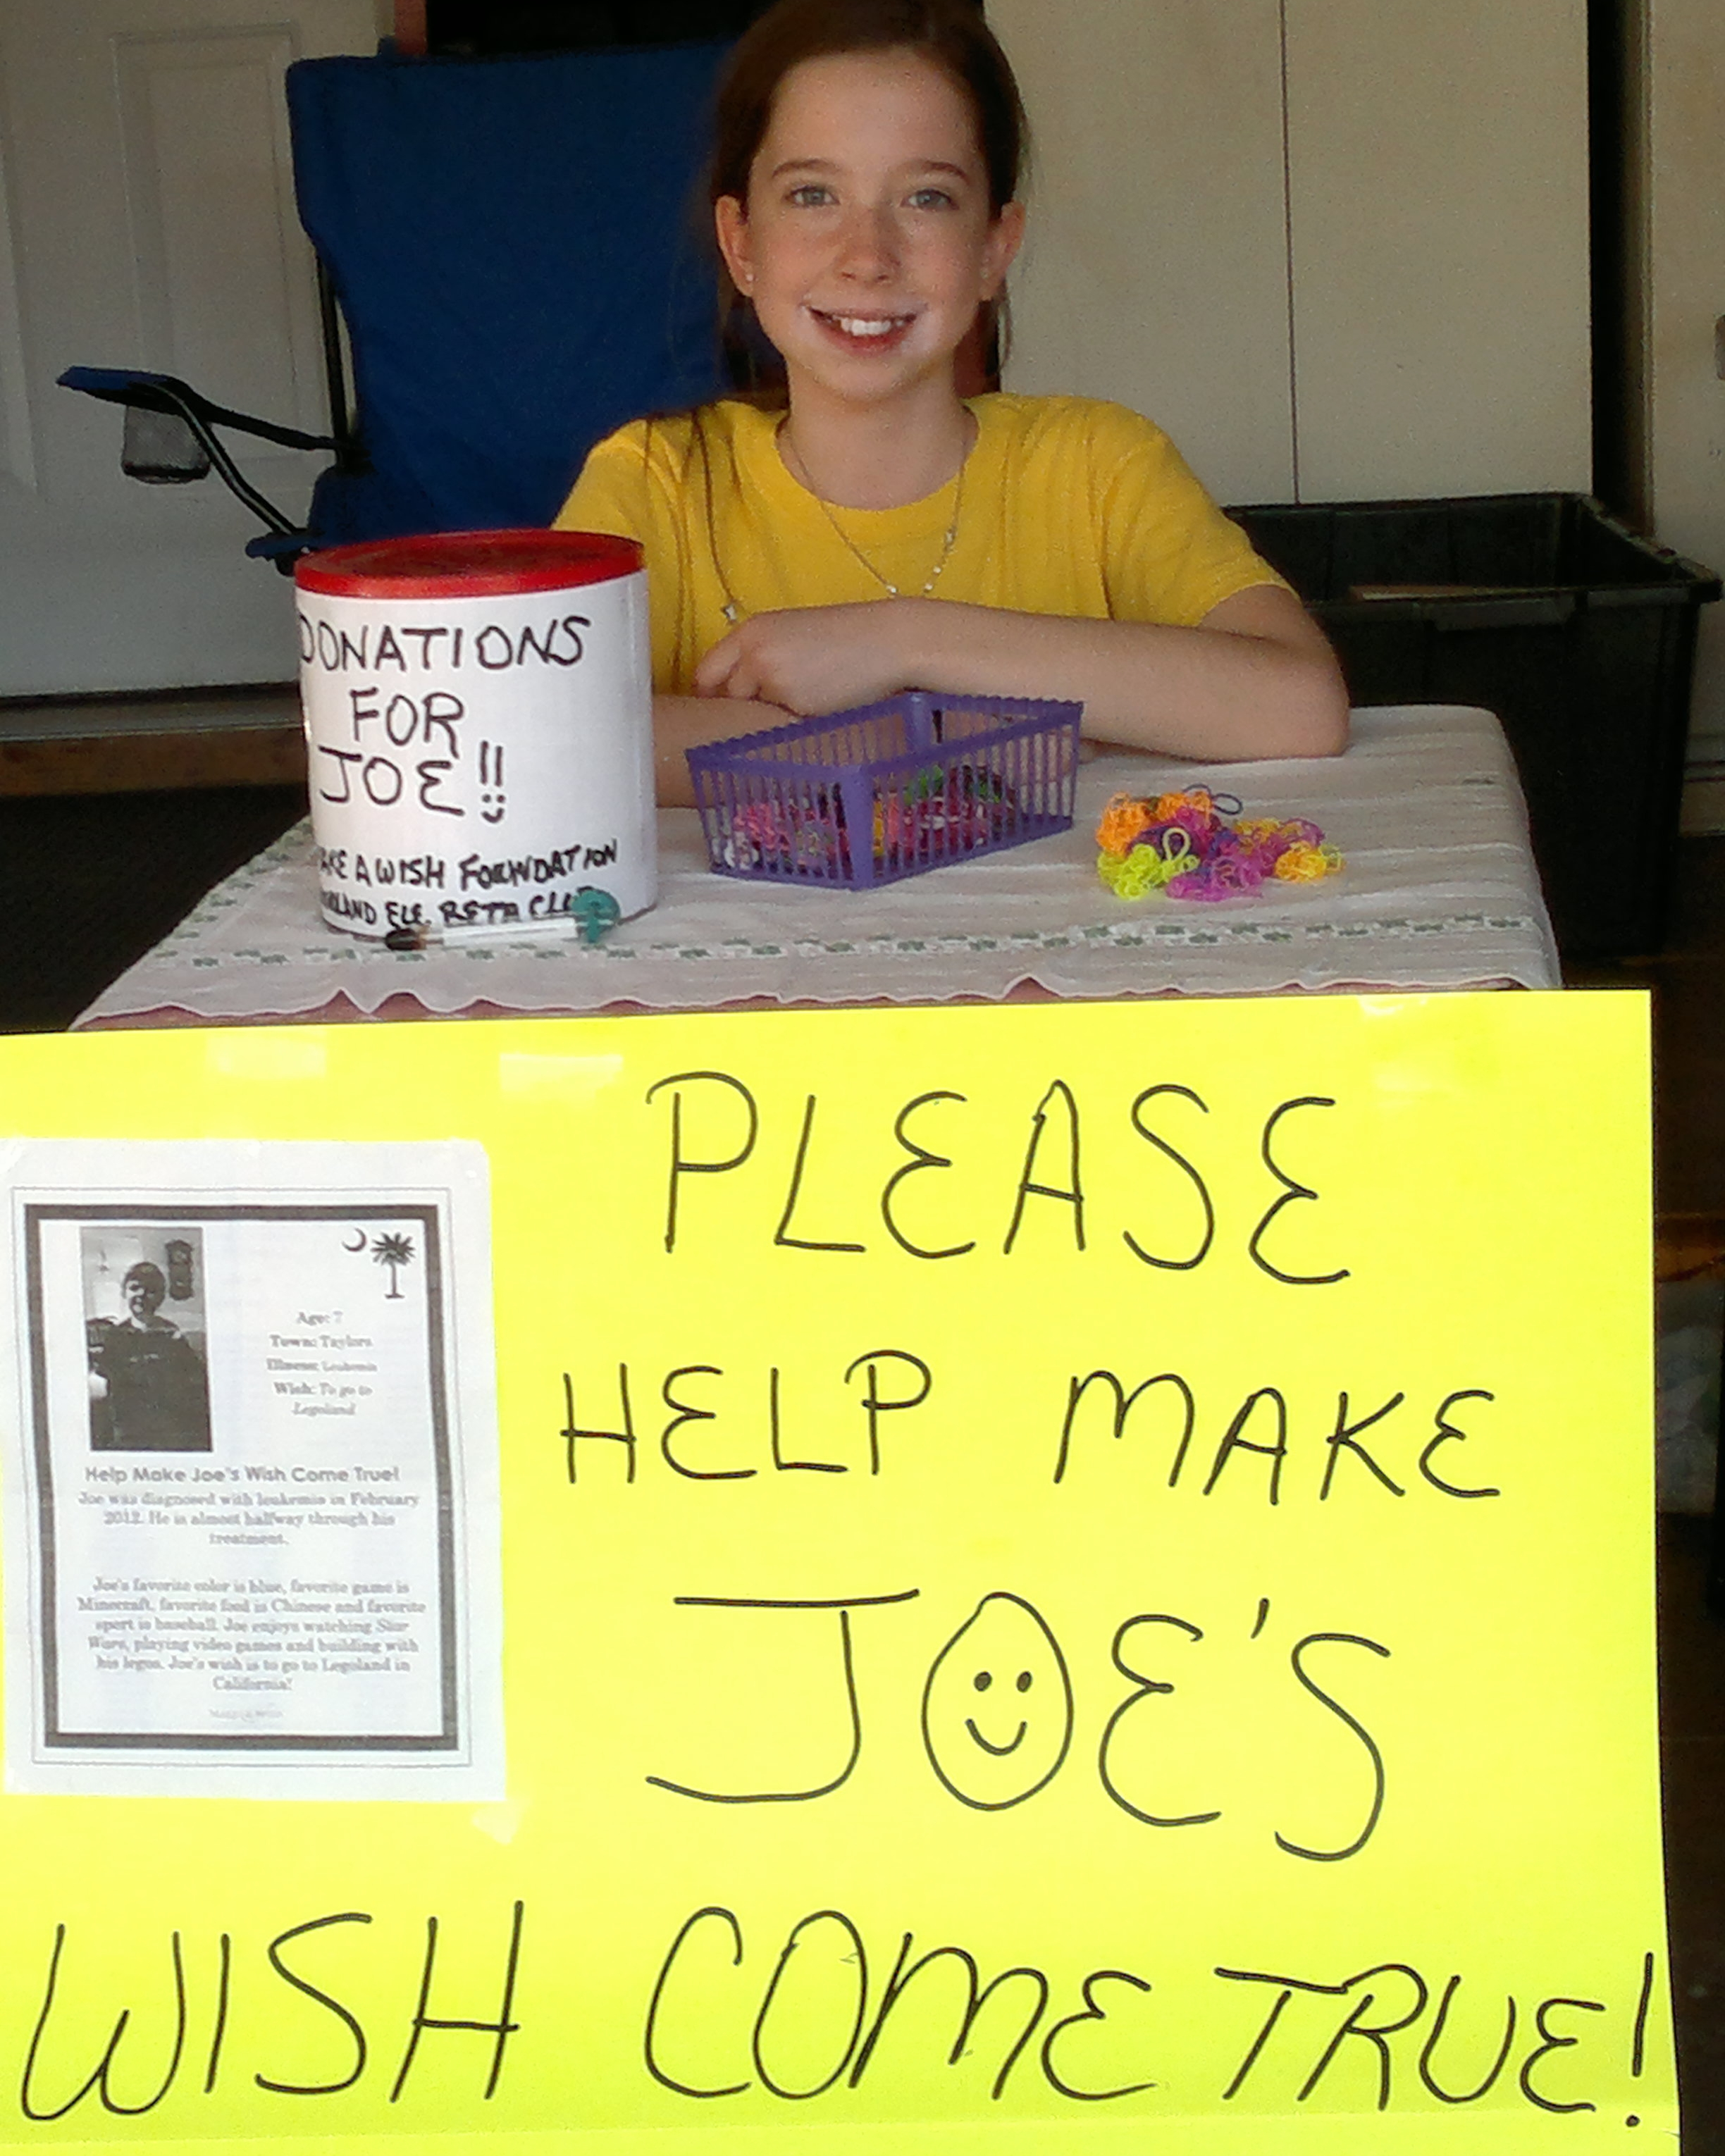 """Bella with table she set up to raise money for """"Joe""""- April 2014"""